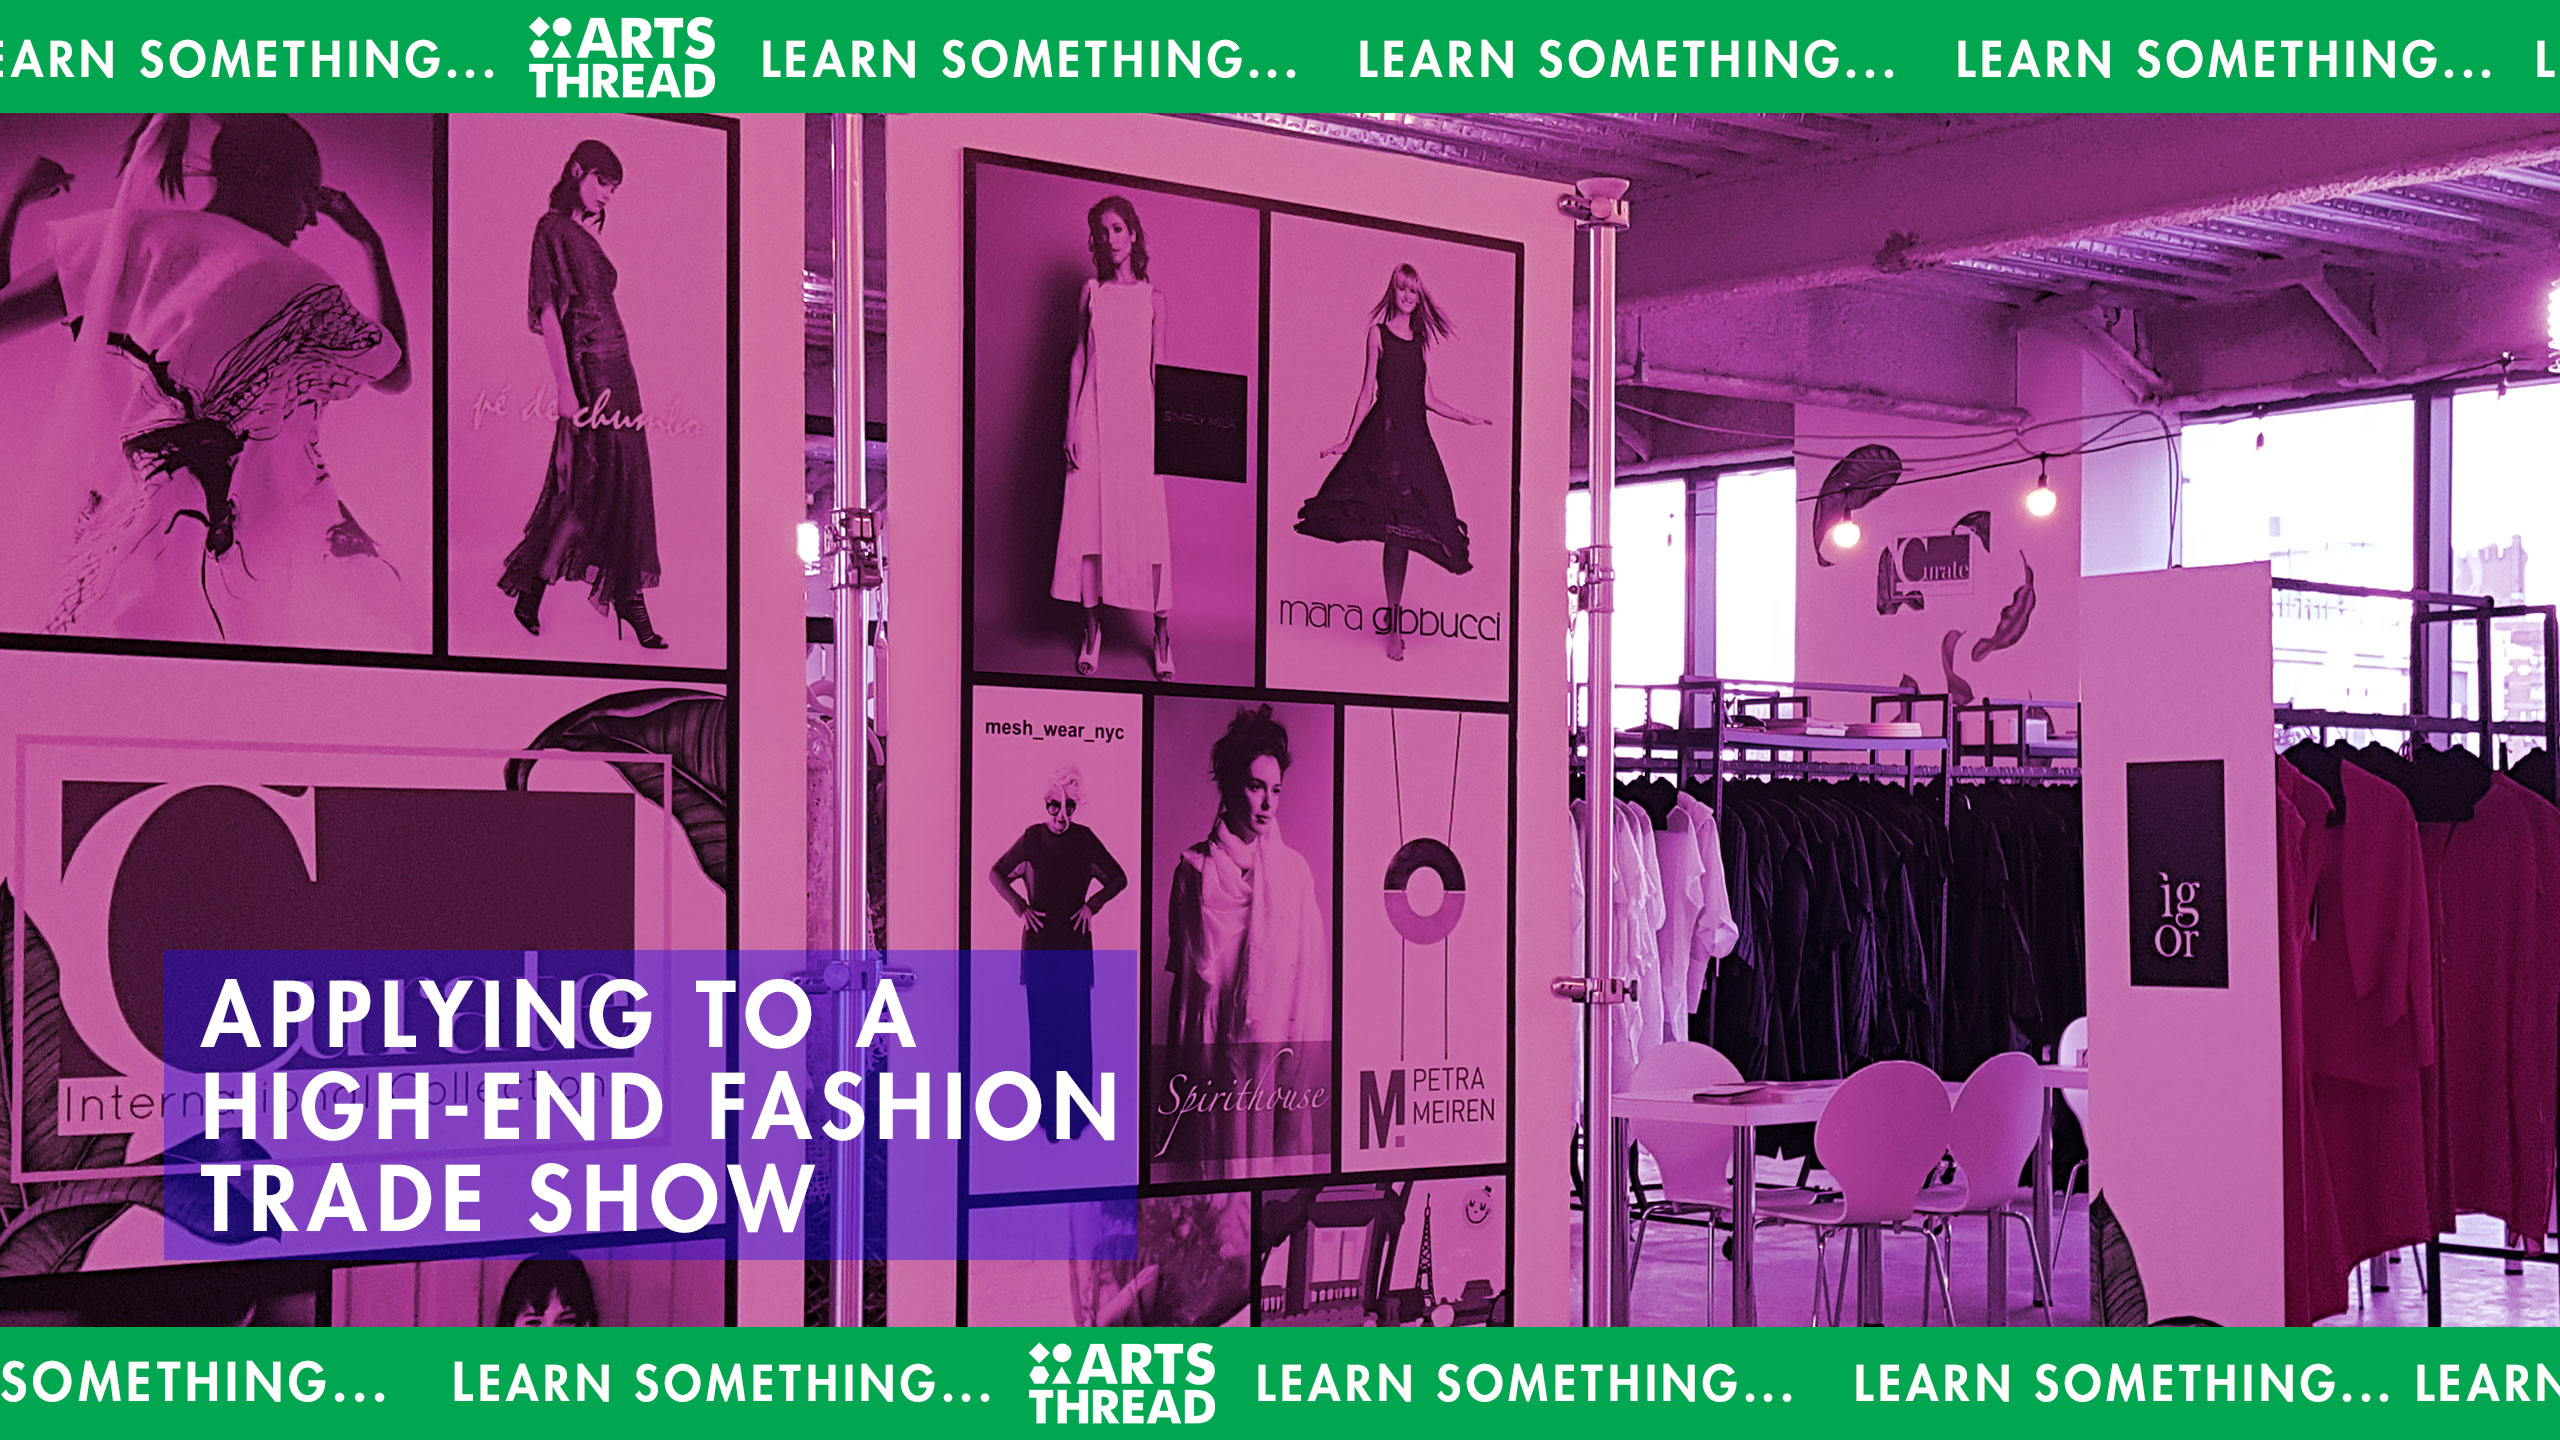 ARTS THREAD Applying to exhibit at a high-end fashion trade show